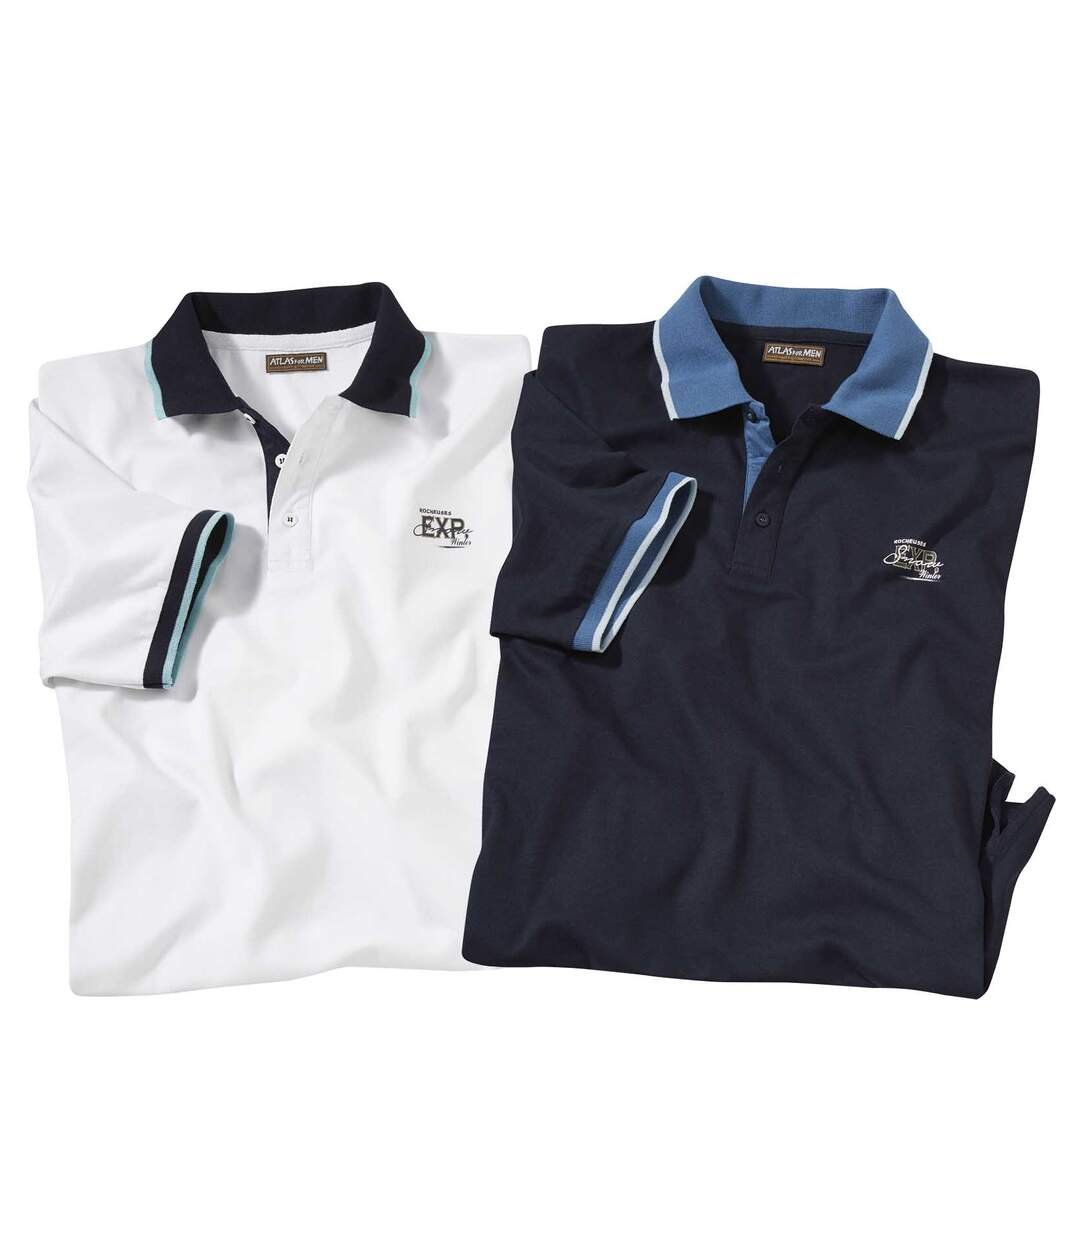 Pack of 2 Men's Jersey Polo Shirts - White Navy Blue